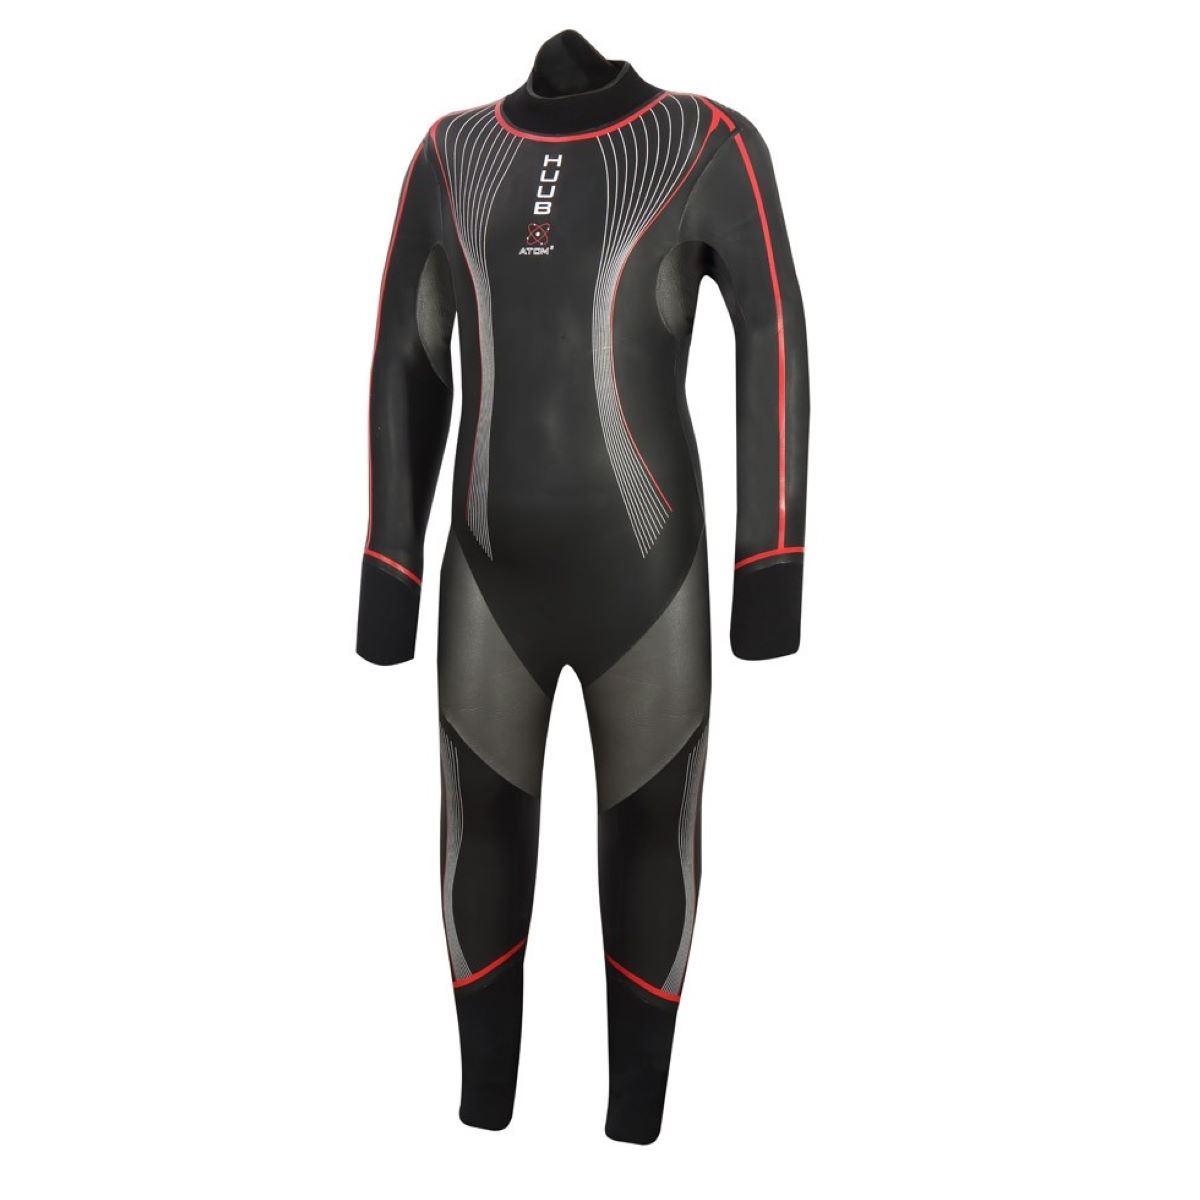 Image of Combinaison Enfant HUUB Atom 2 - 10 to 11 Noir/Rouge | Combinaisons